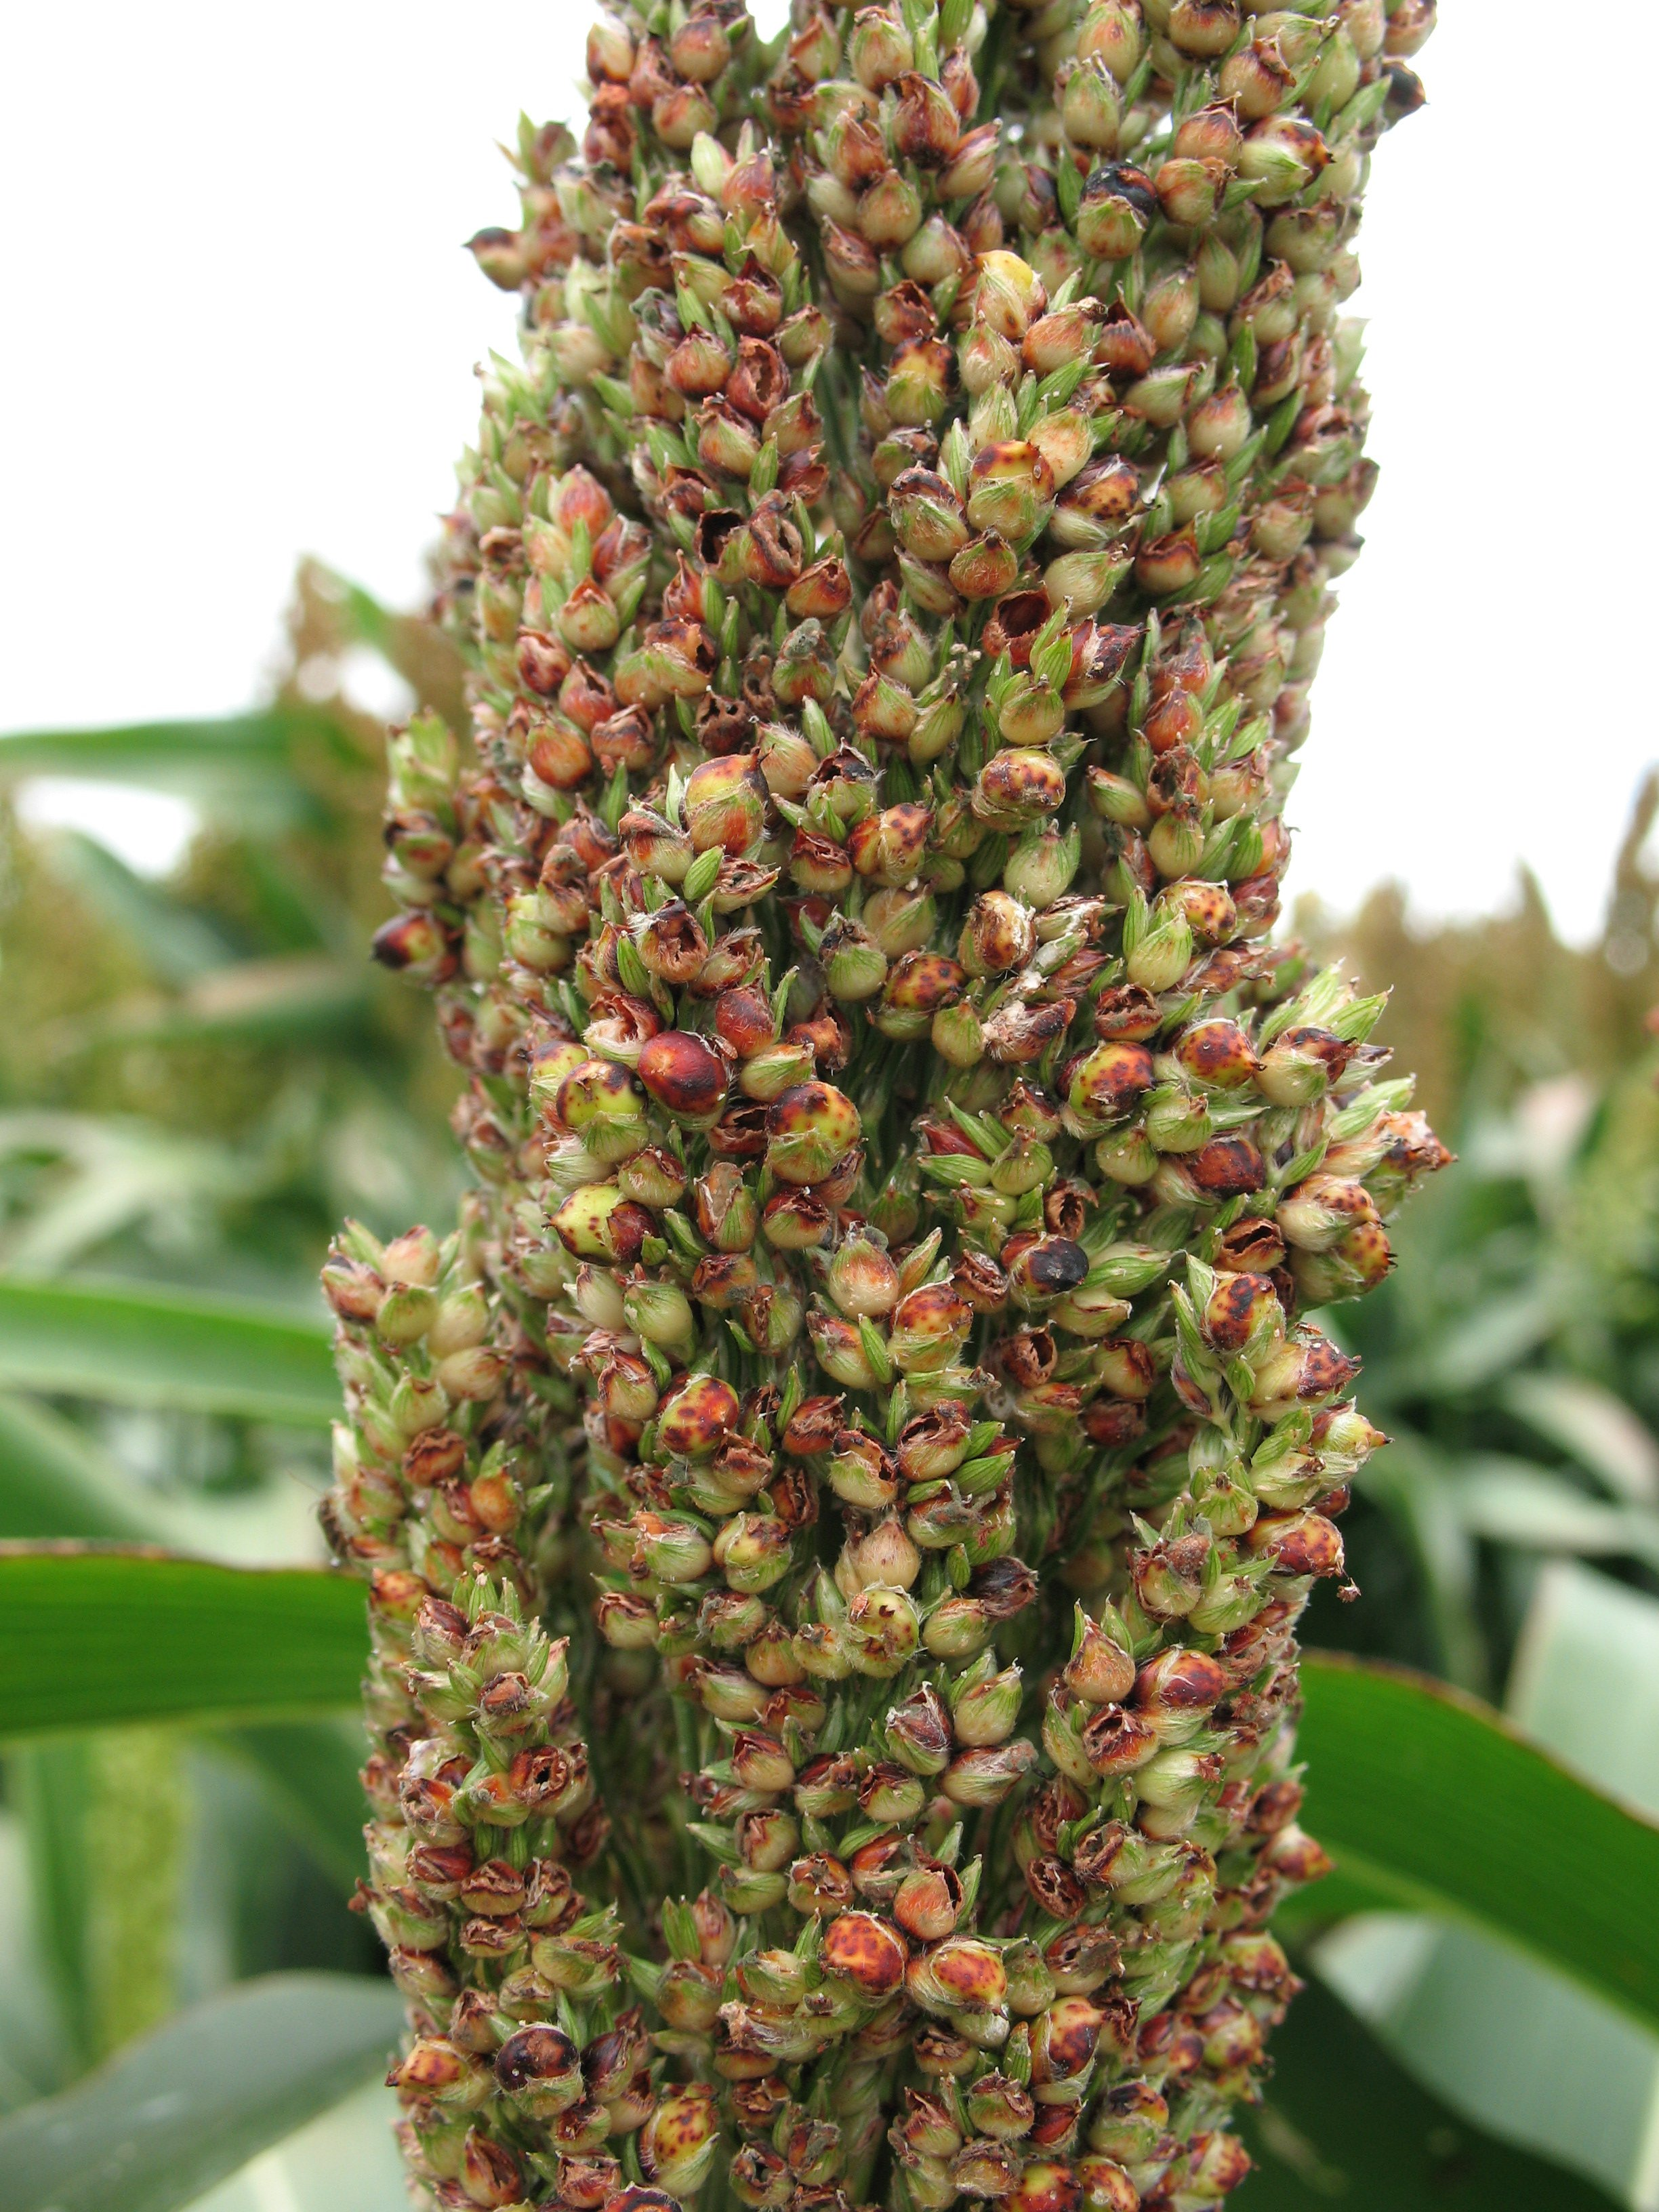 Developing sorghum head showing signs of RGB damage; undeveloped seed, and spotting on developing seed.